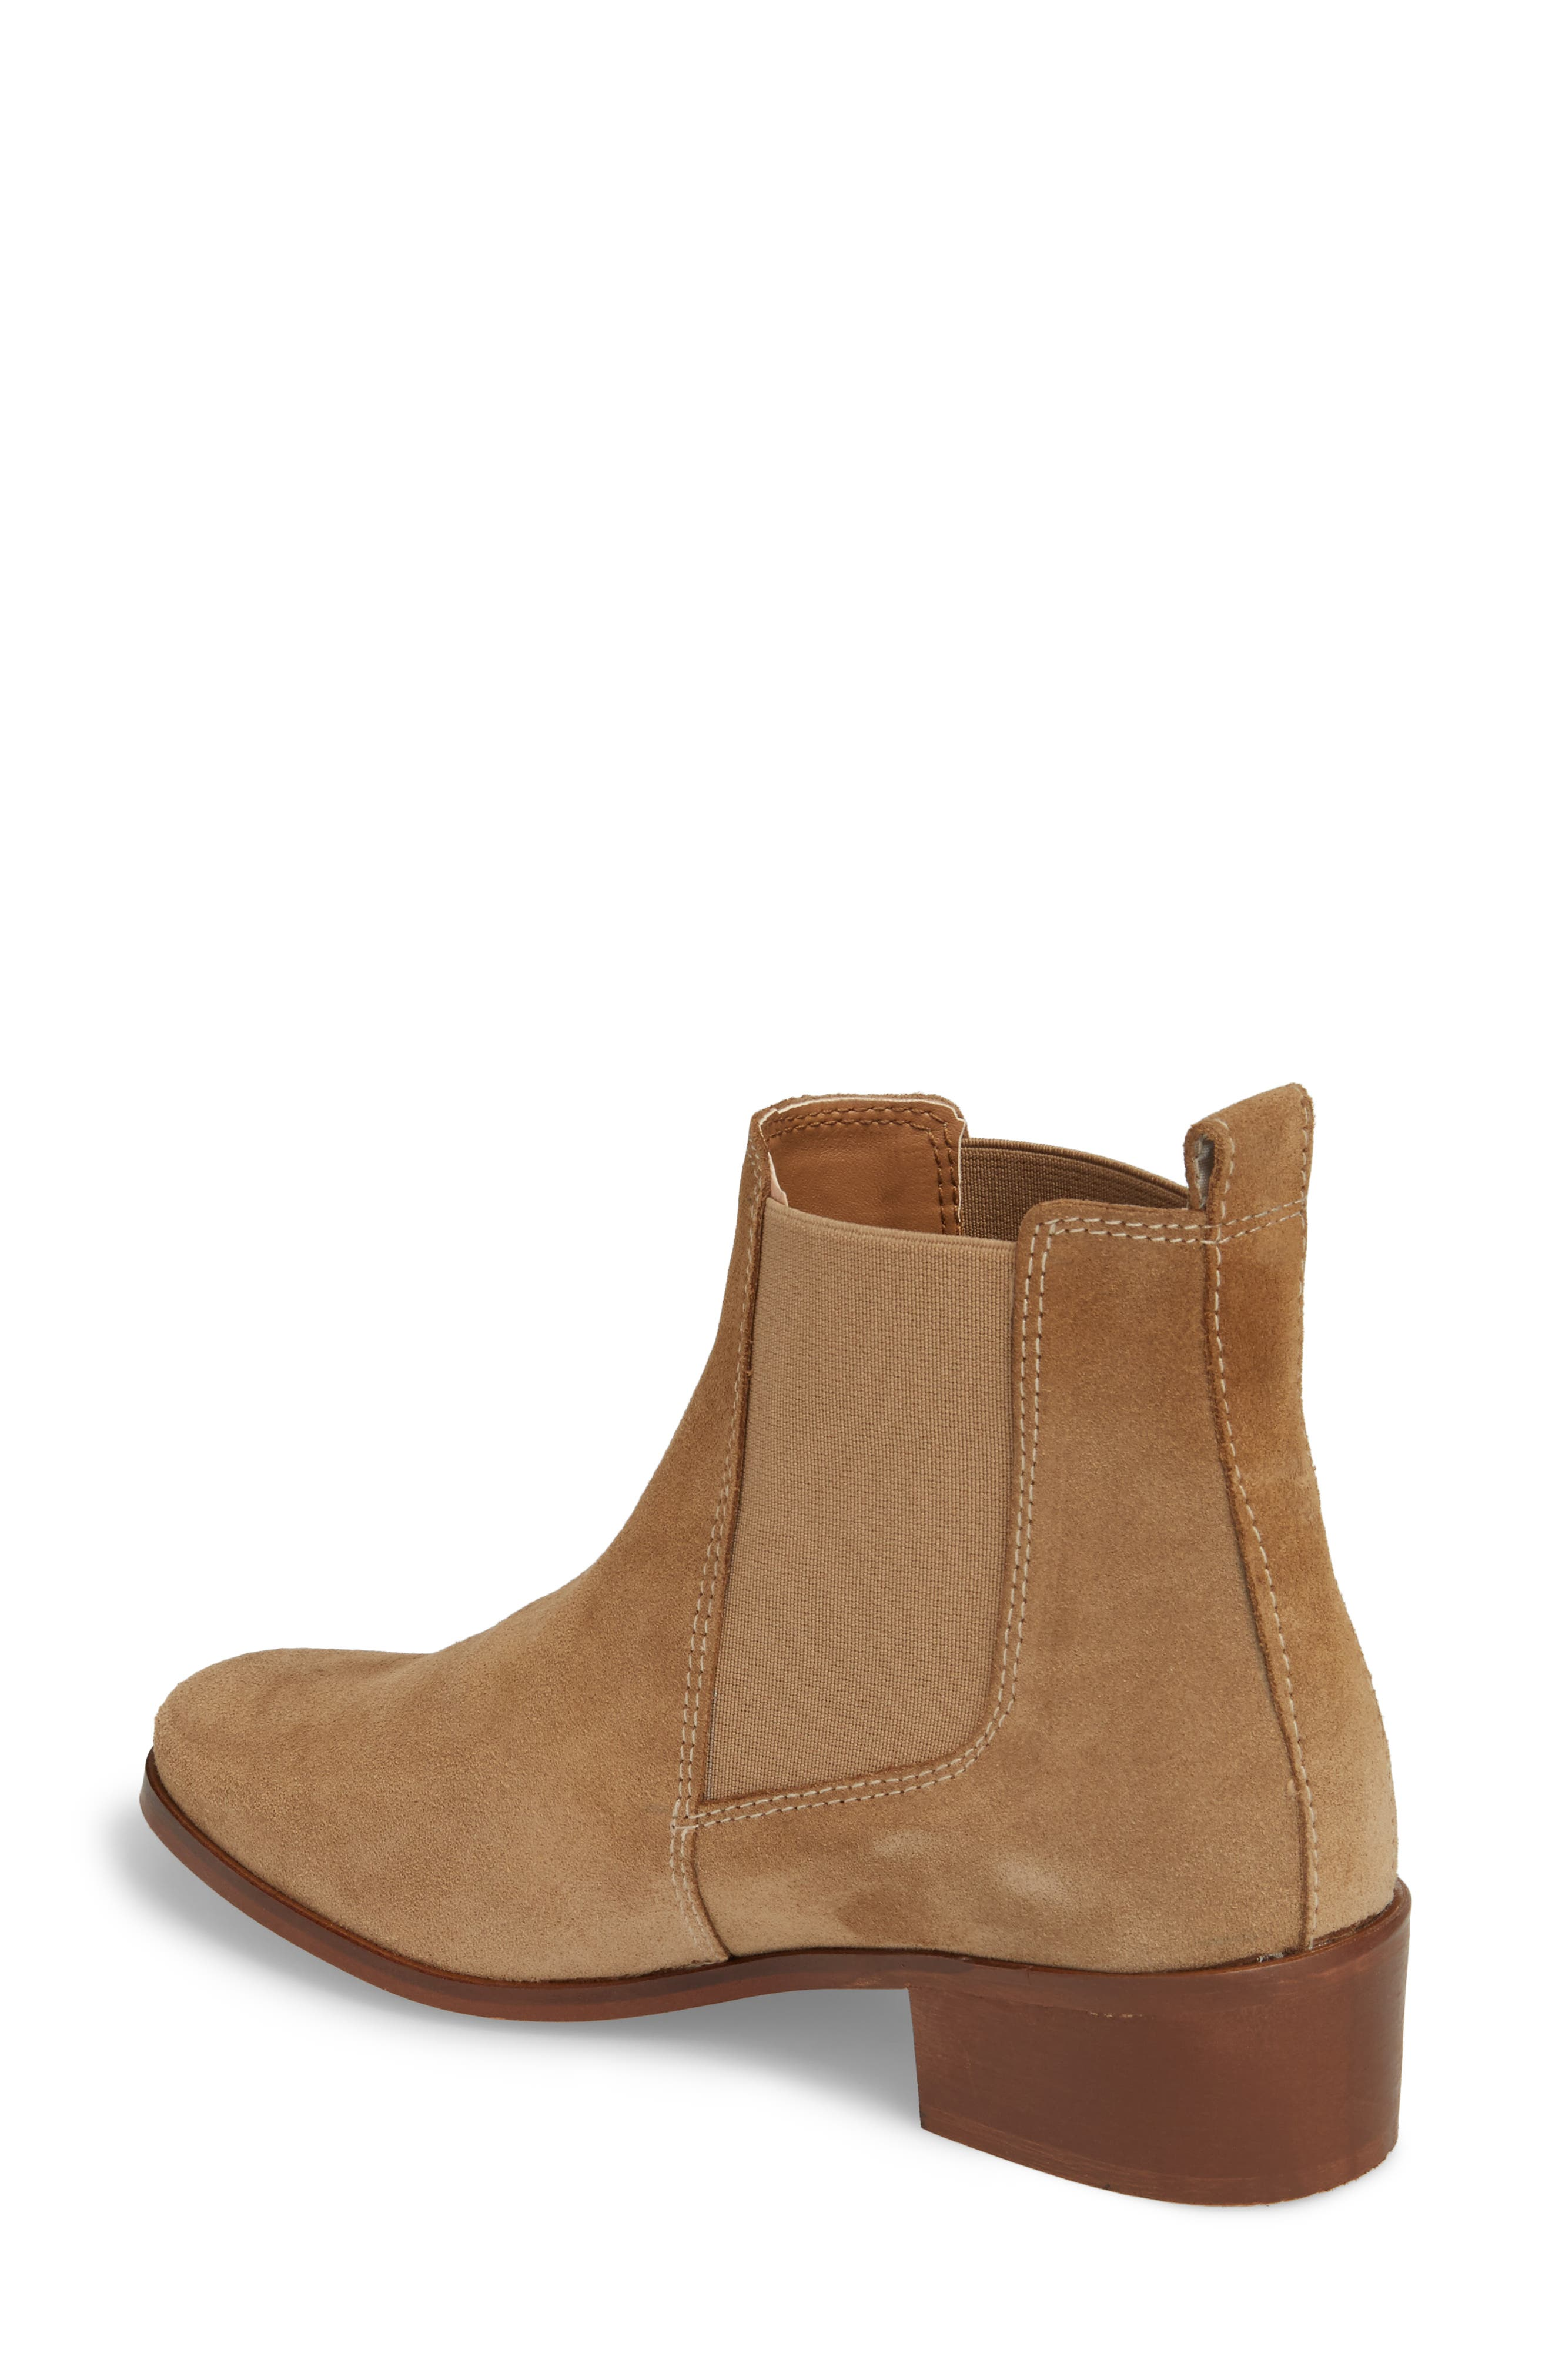 Dover Chelsea Bootie,                             Alternate thumbnail 2, color,                             Taupe Suede